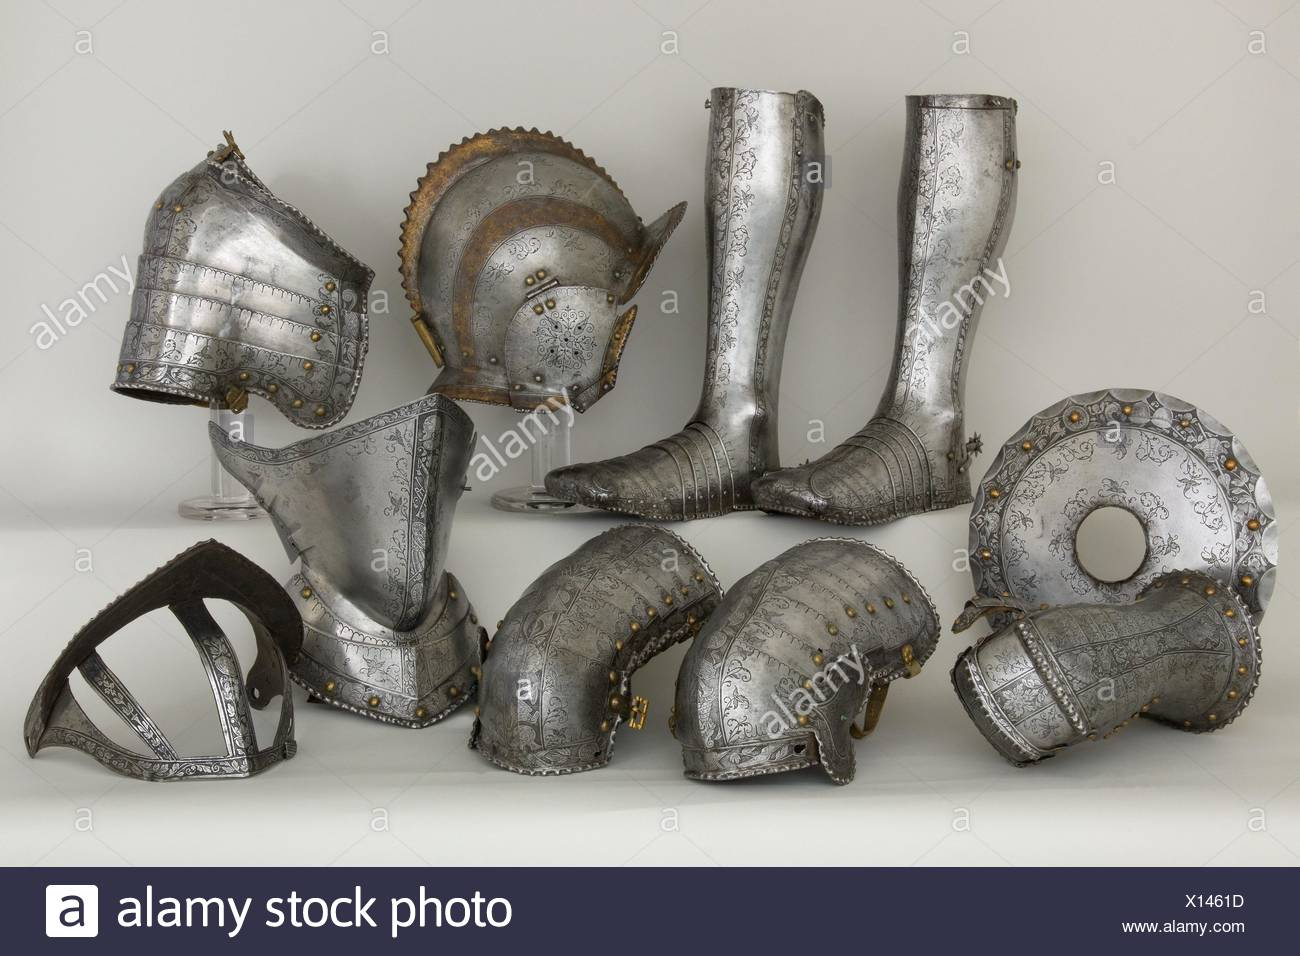 Elements Augsburg Elements Of An Armor Garniture Date 1560 Geography Augsburg